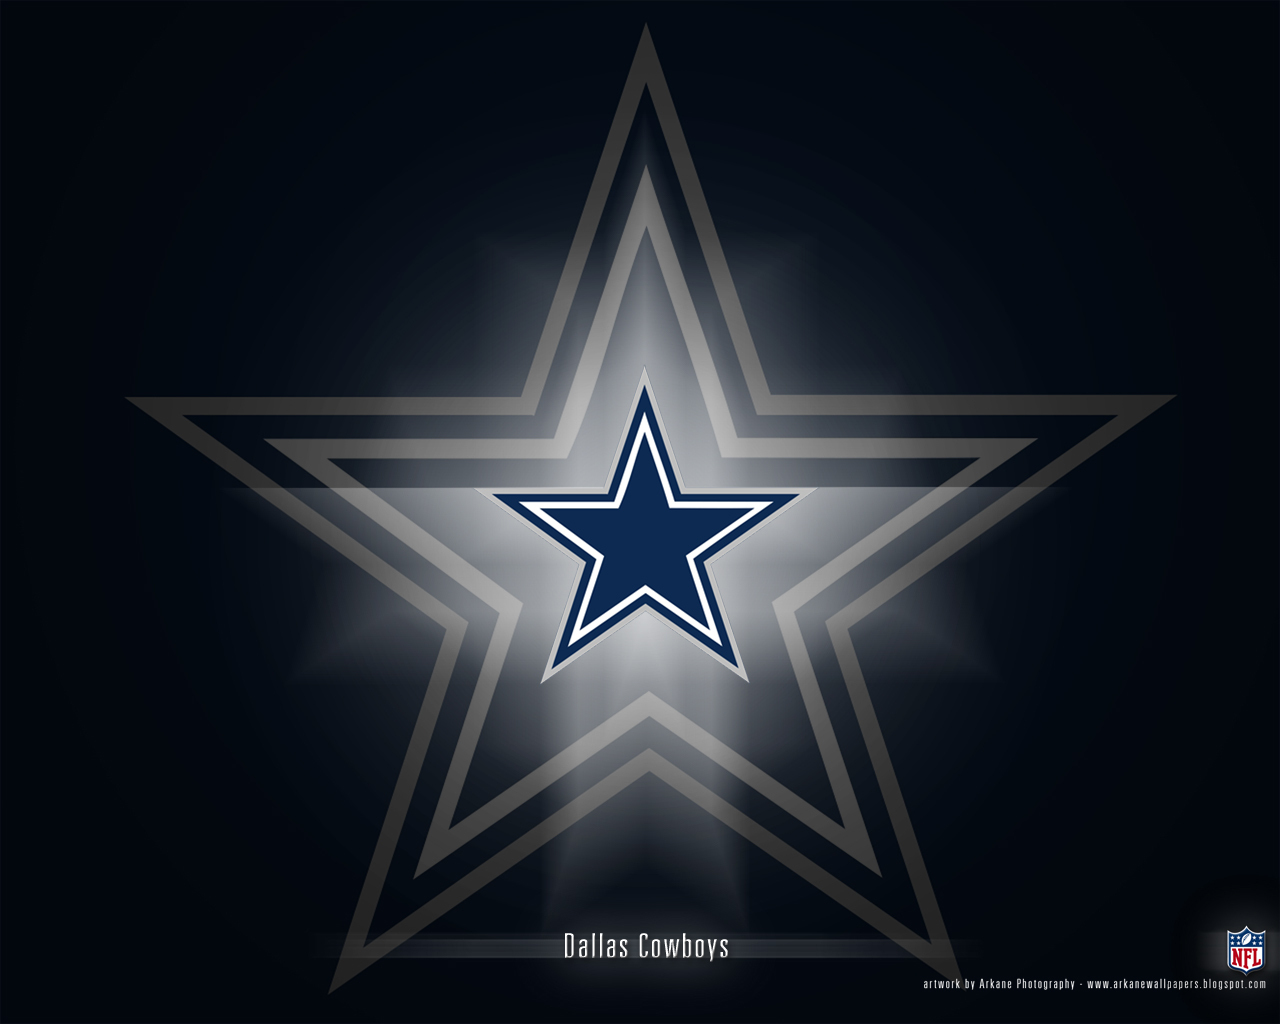 Desktop Wallpaper 1280 x 768. With Dallas Cowboys starting